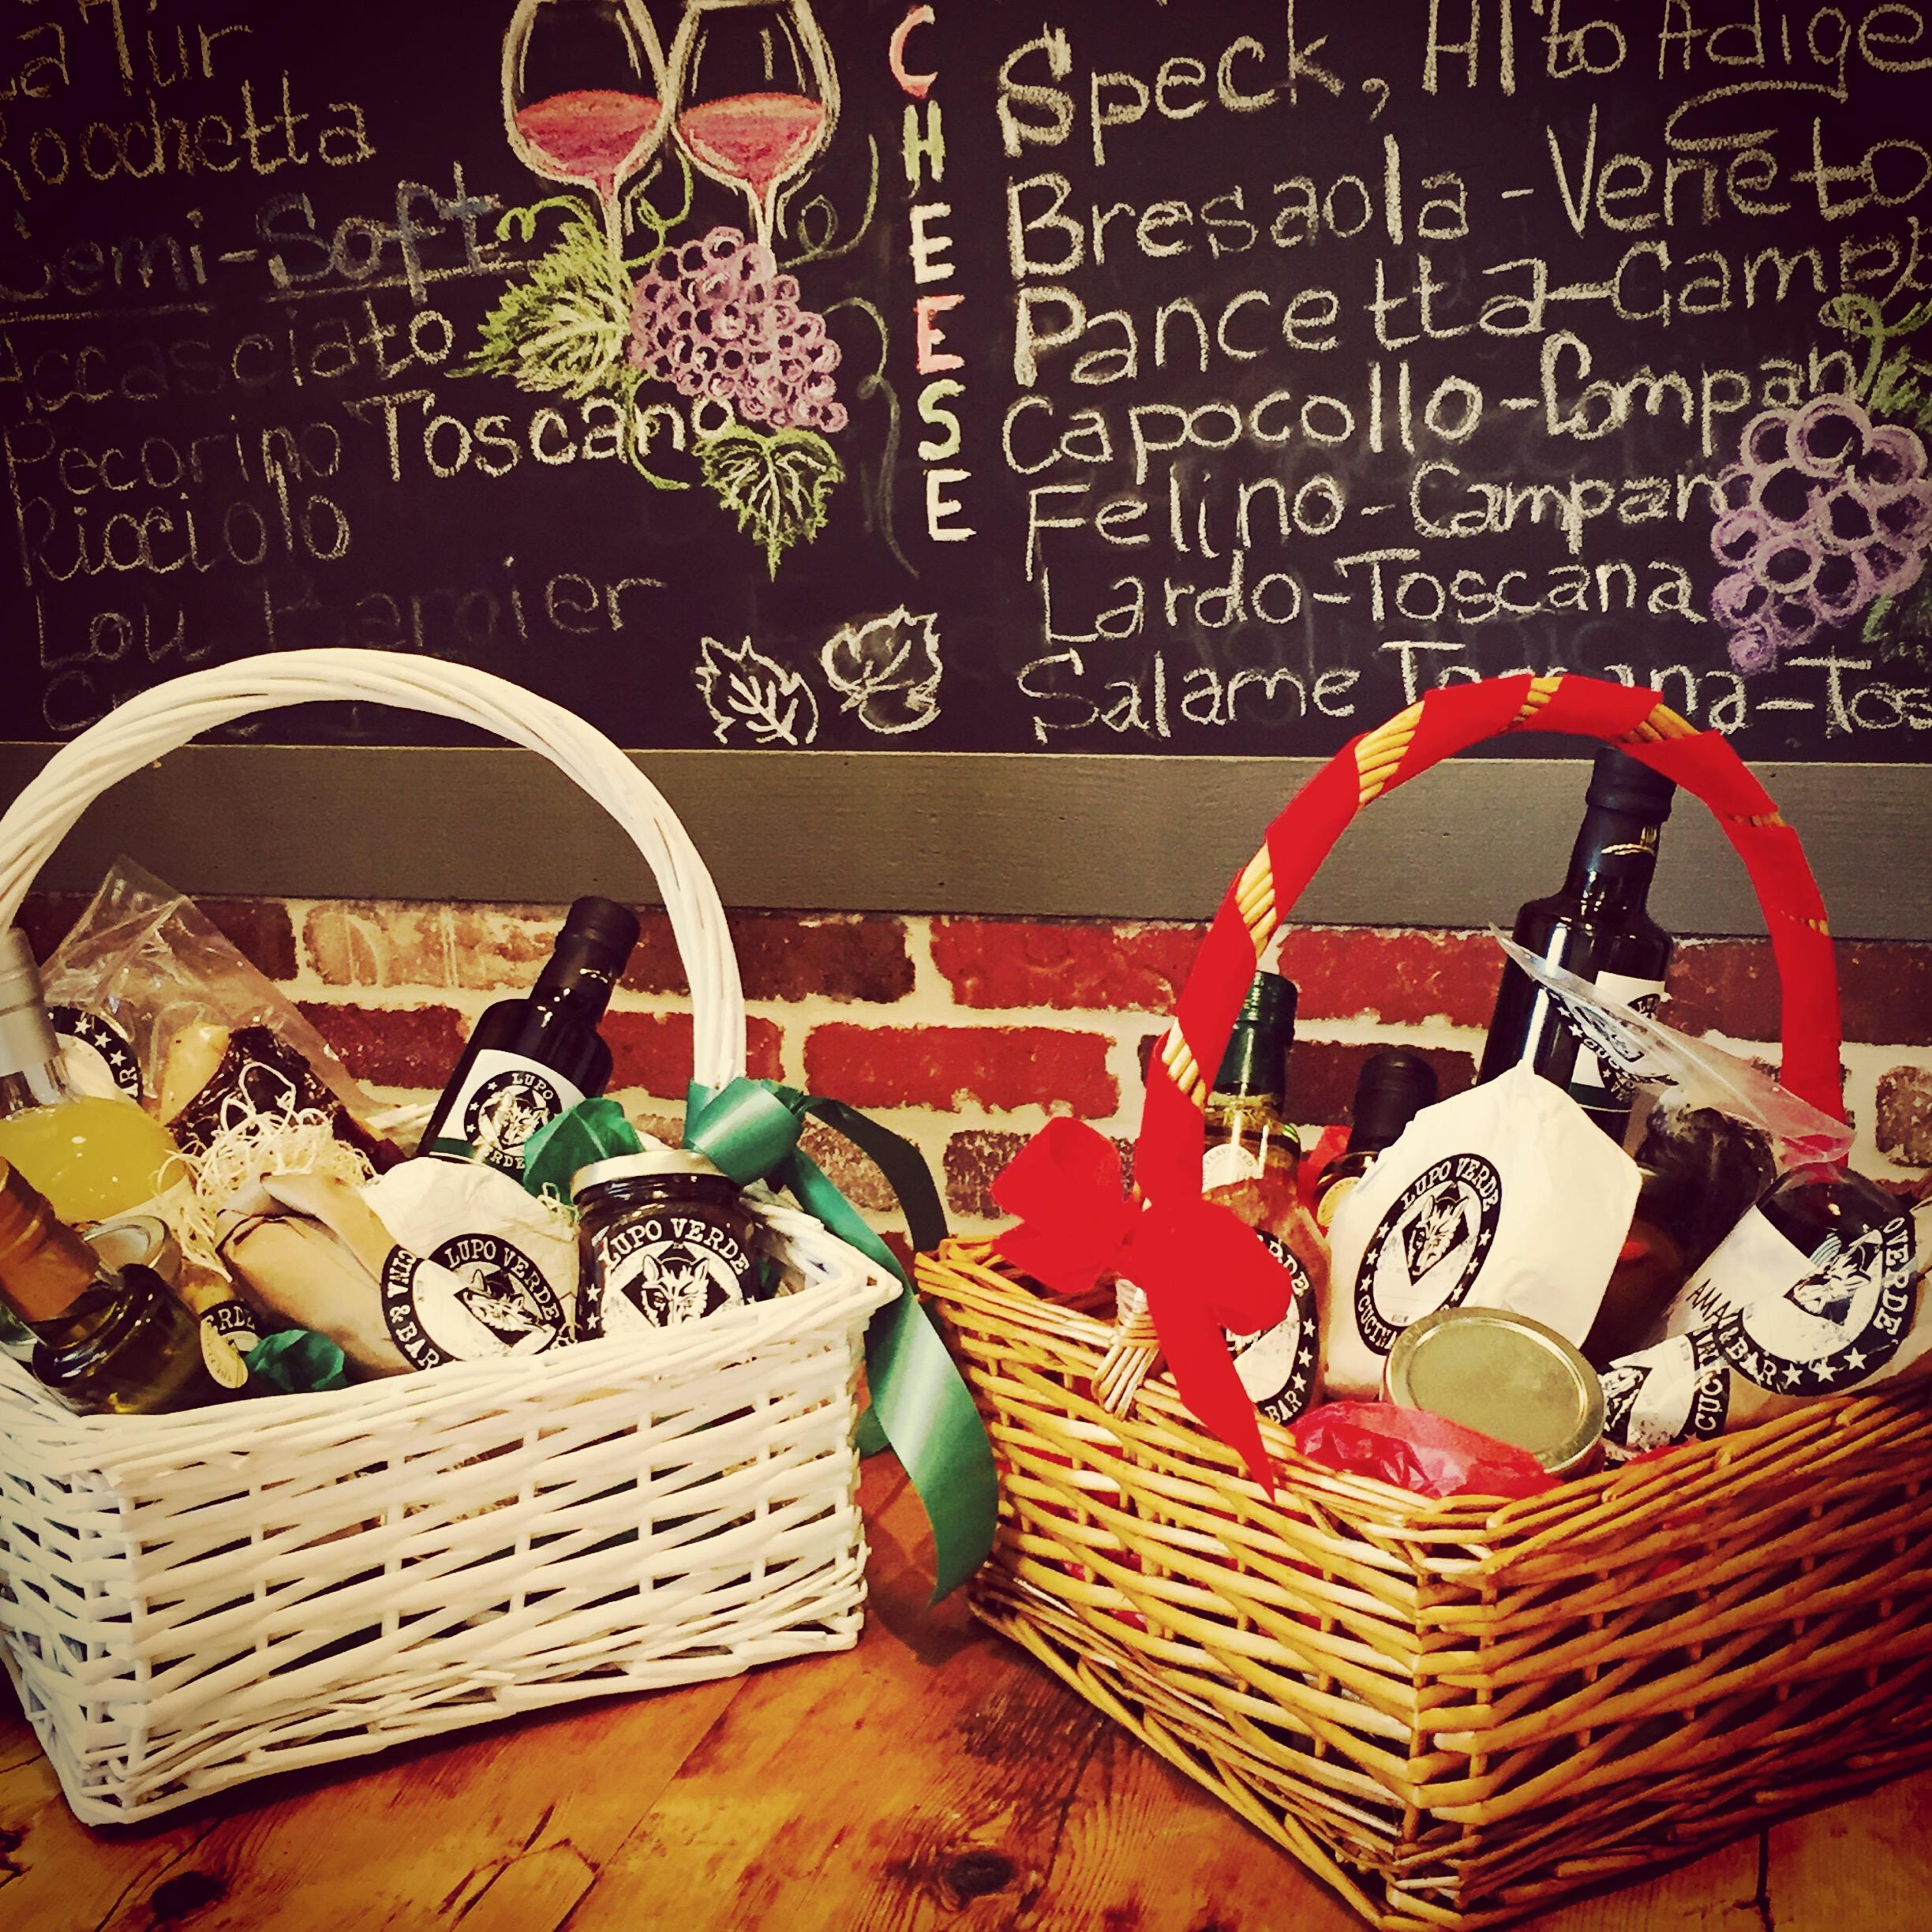 Italian Gift Basket from Lupo Verde // Price: $60-$200 // Buy at the restaurant or call ahead // www.lupoverdedc.com // (Image: Lupo Verde){&nbsp;}<p></p>